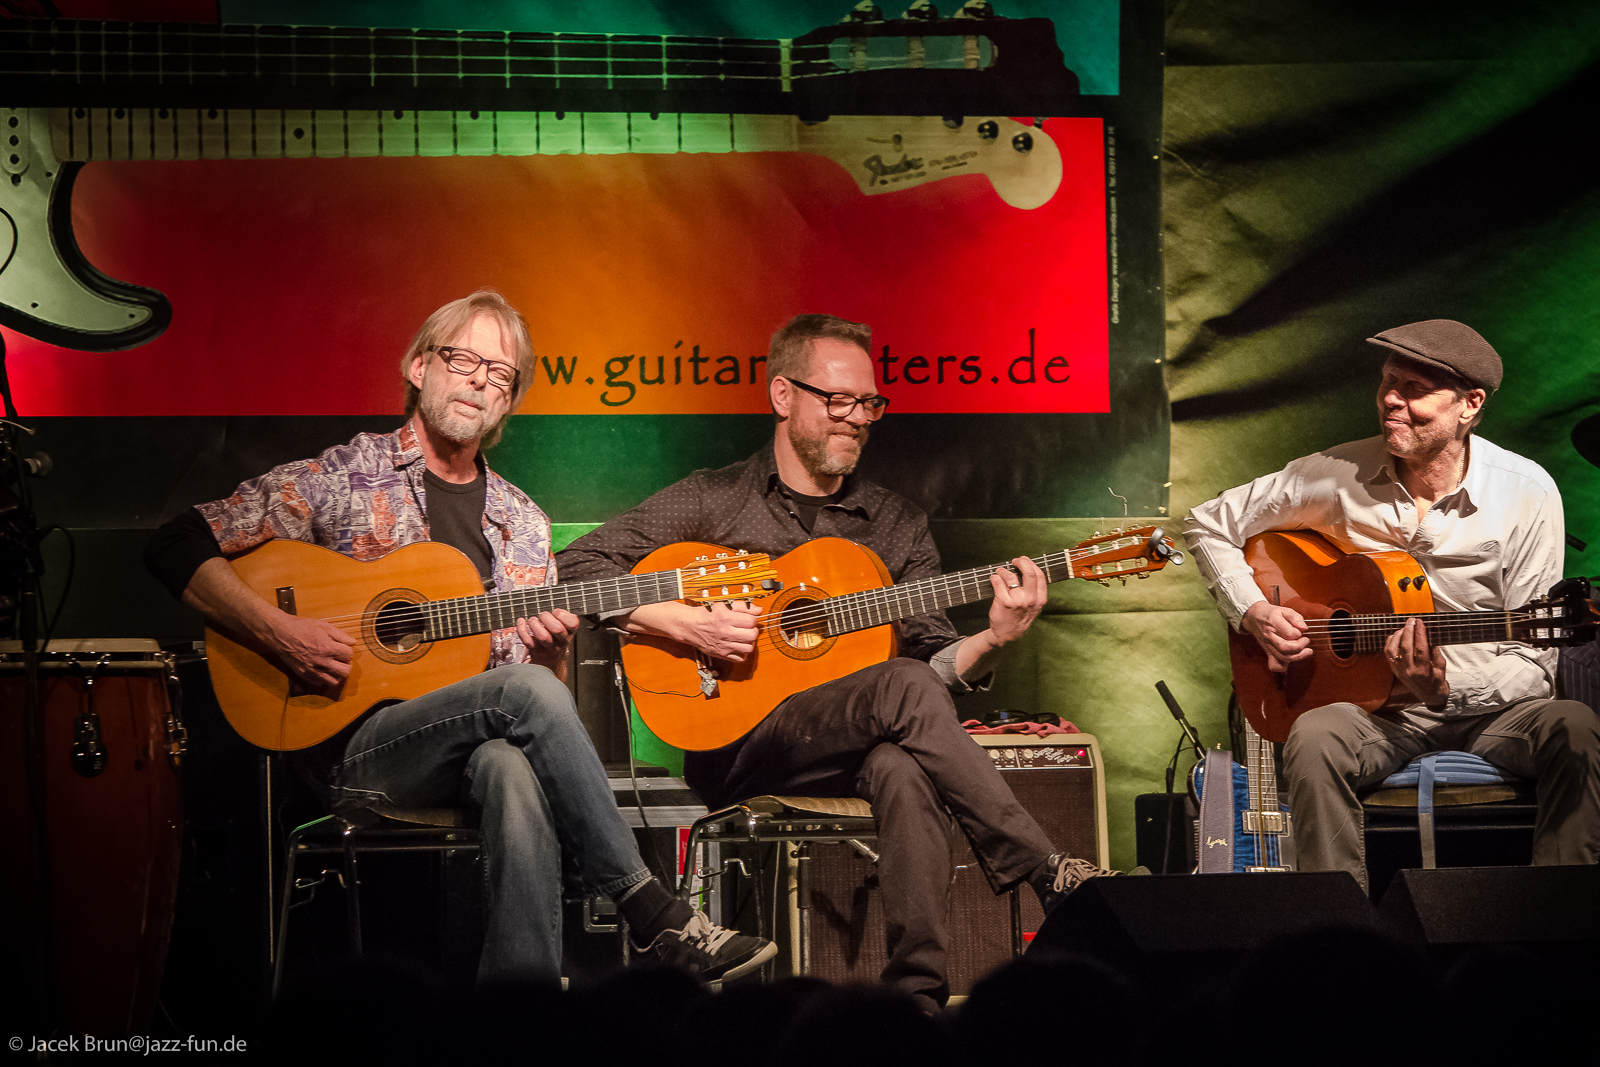 Acoustic Guitar Trio, 8. Reichenberg Guitar Masters 2016